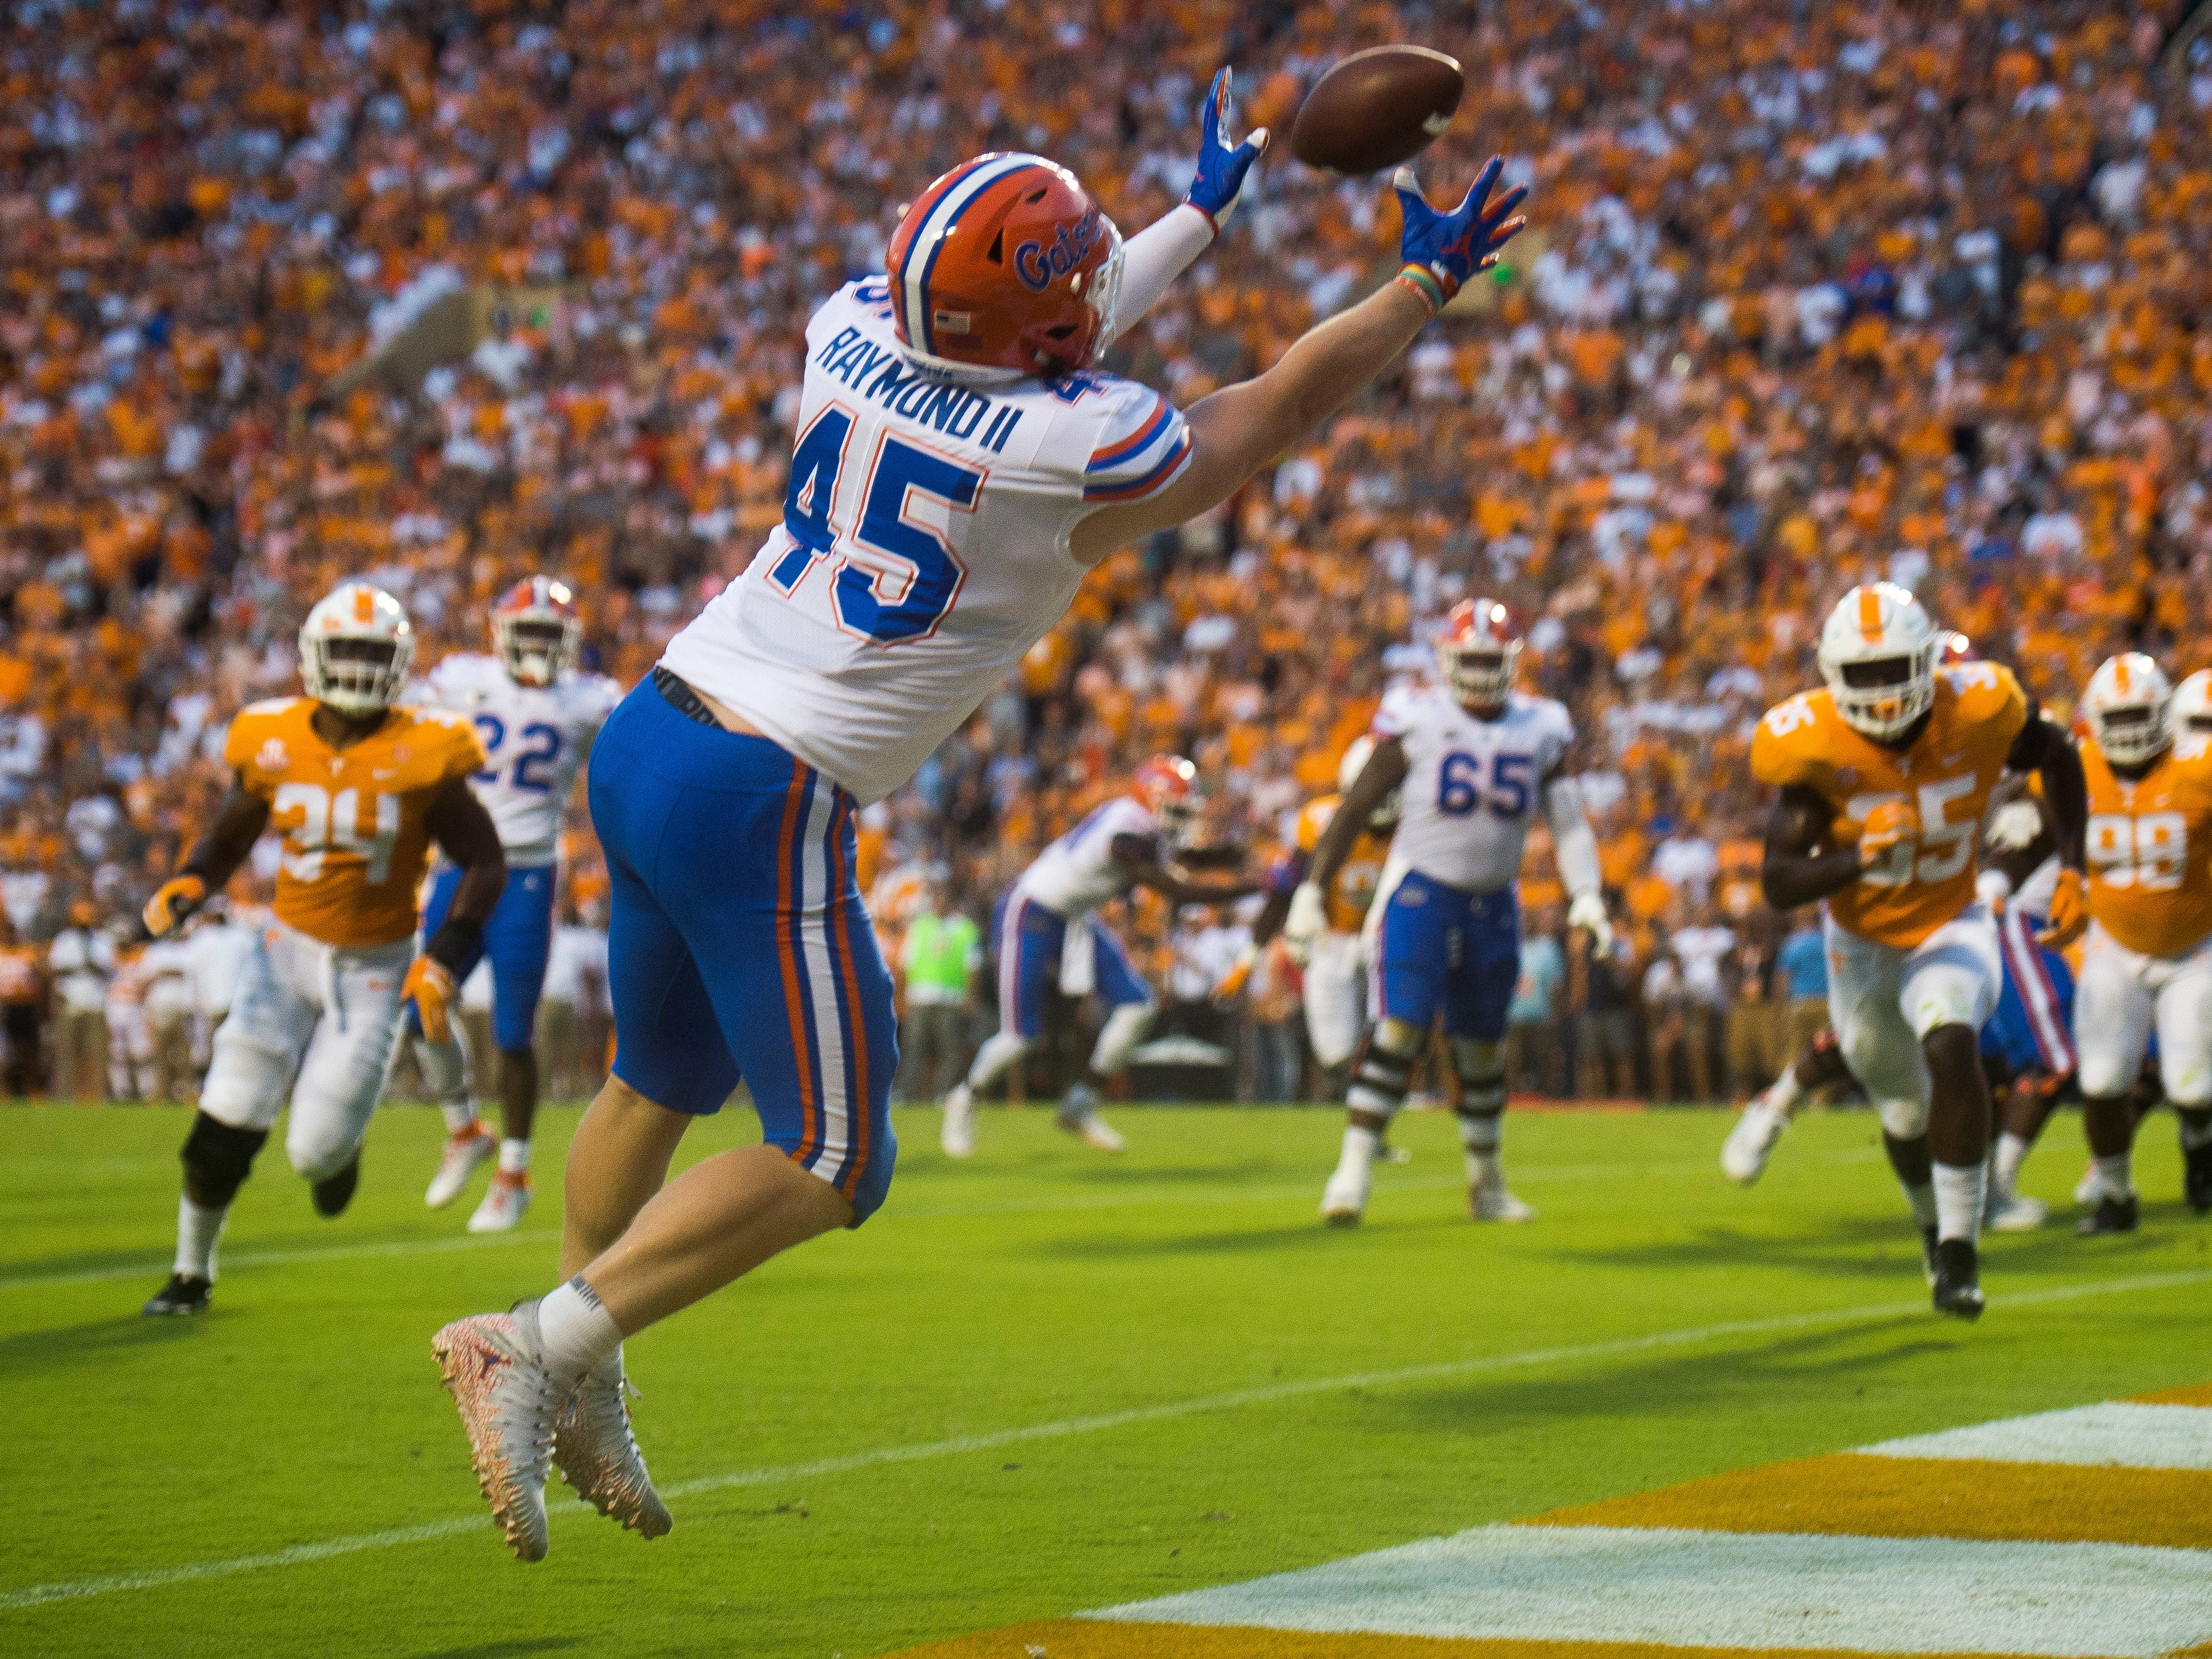 Florida's R.J. Raymond (45) makes a catch for a touchdown during the Tennessee Volunteers' game against Florida in Neyland Stadium on Saturday, Sept. 22, 2018.